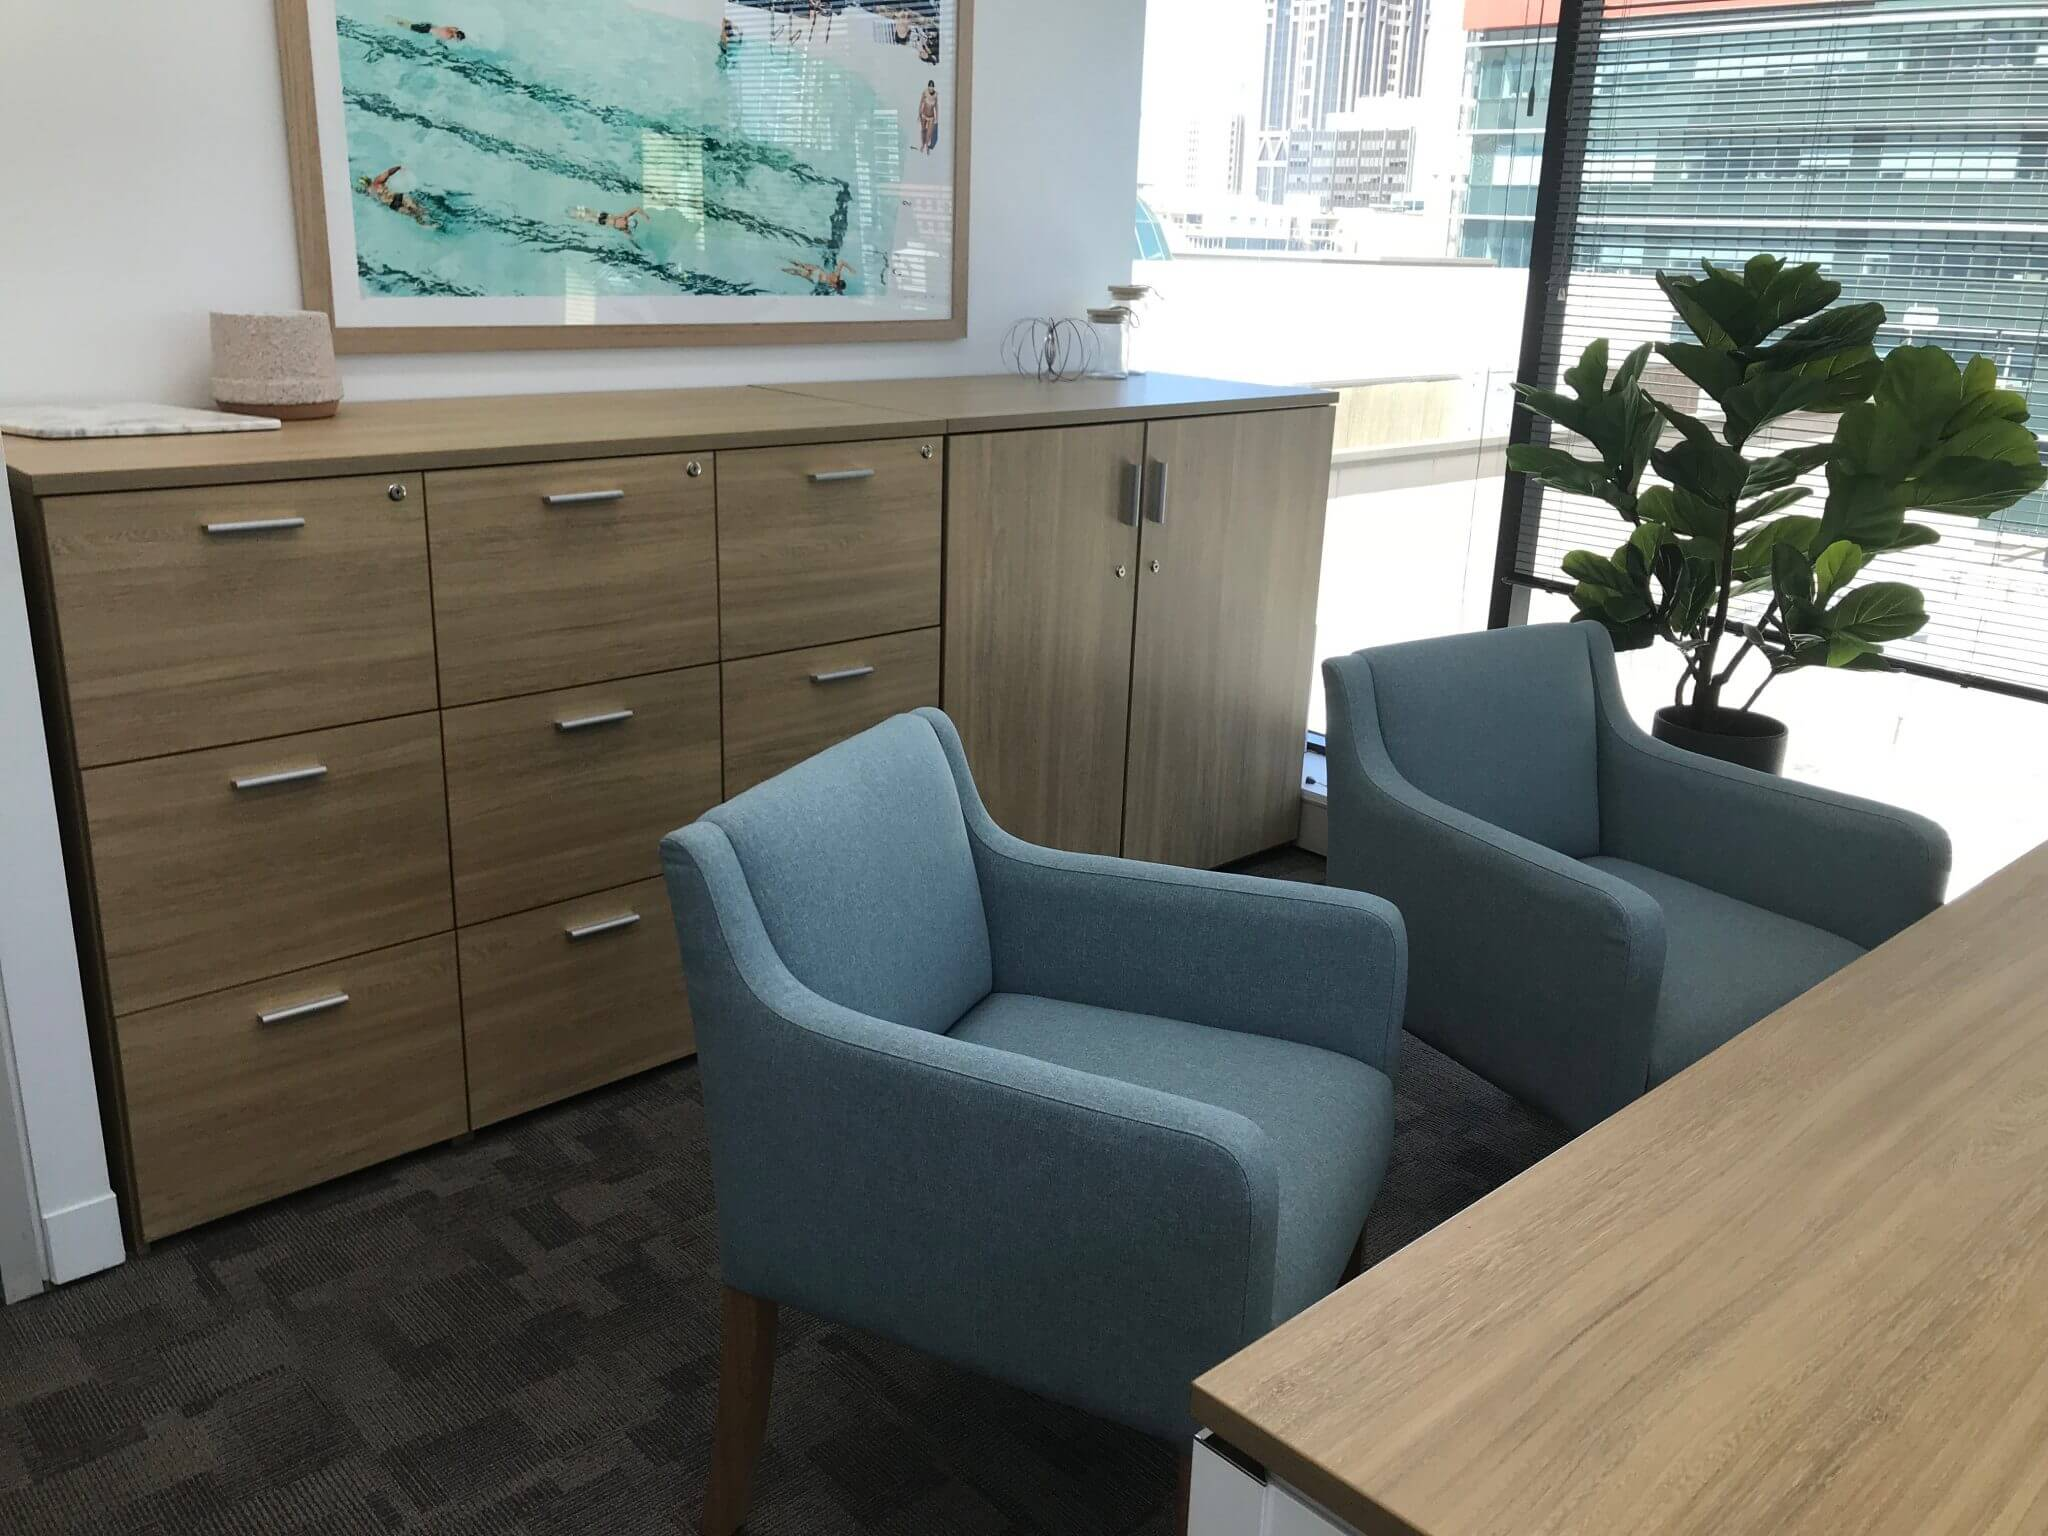 woodgrain Laminex office desk and credenza with two blue upholstered chairs